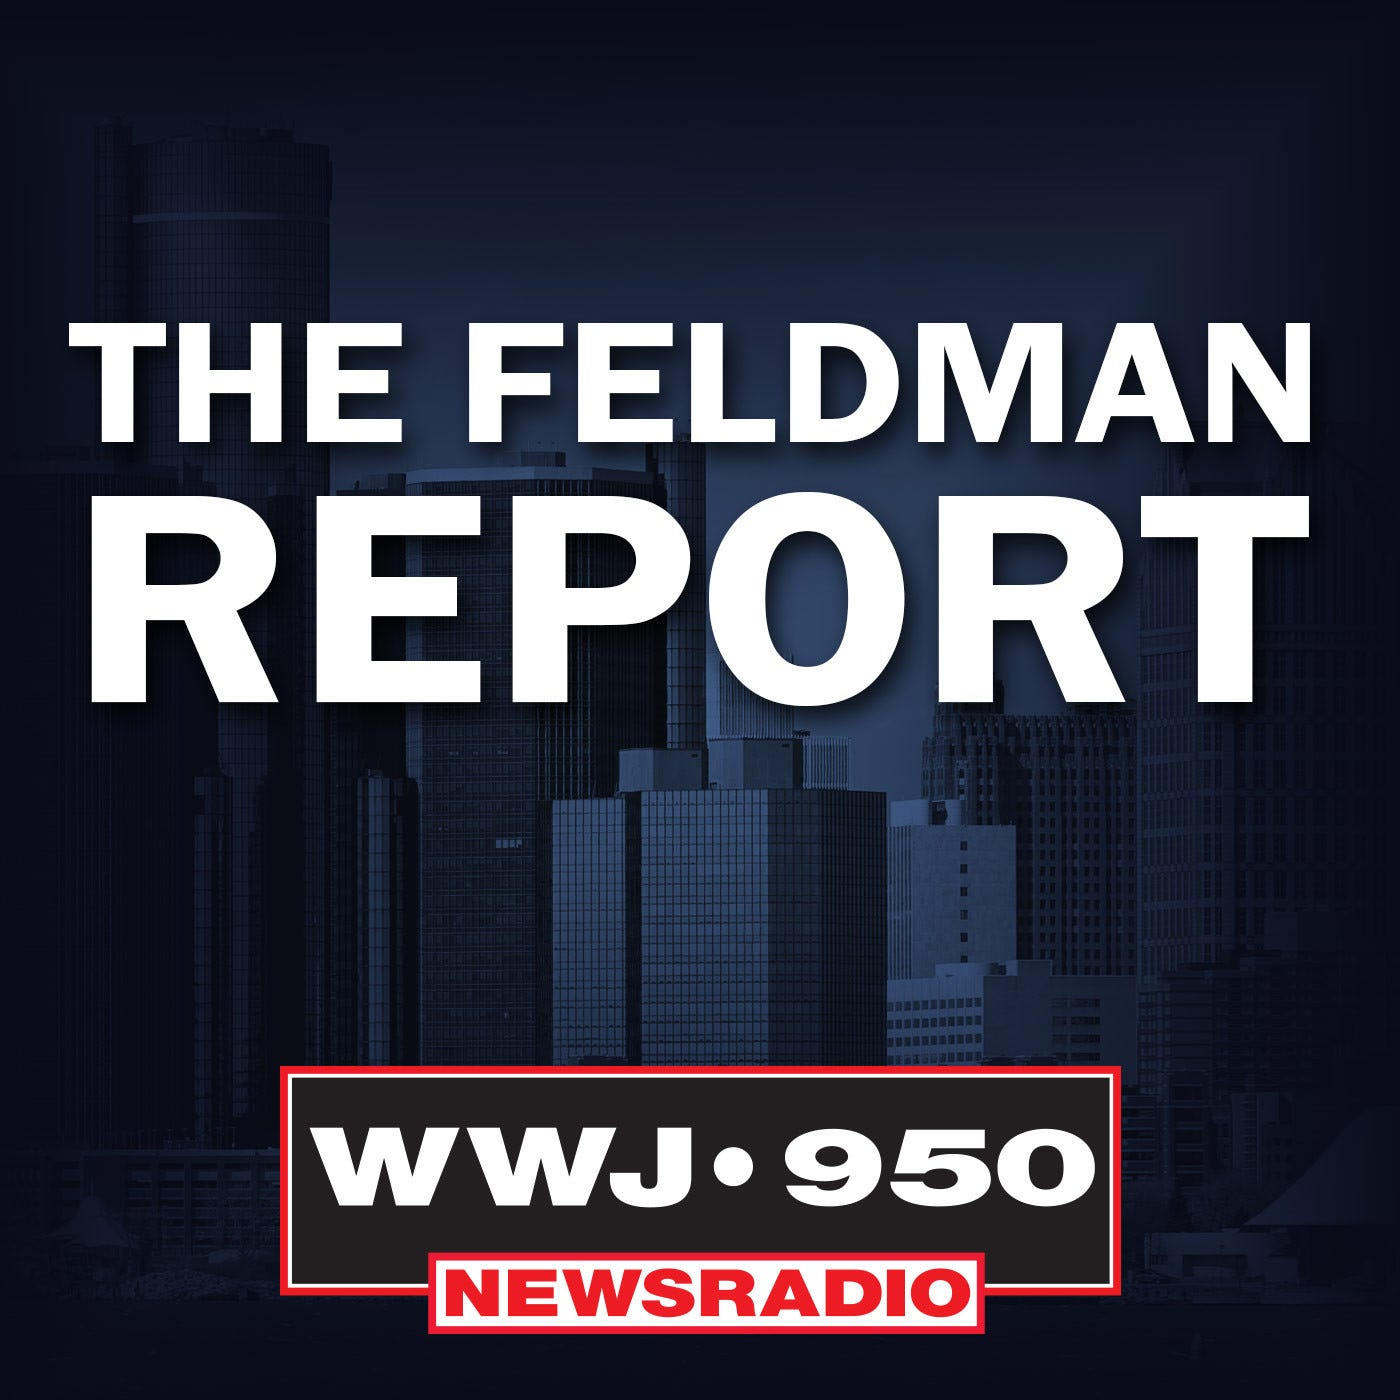 The Feldman Report